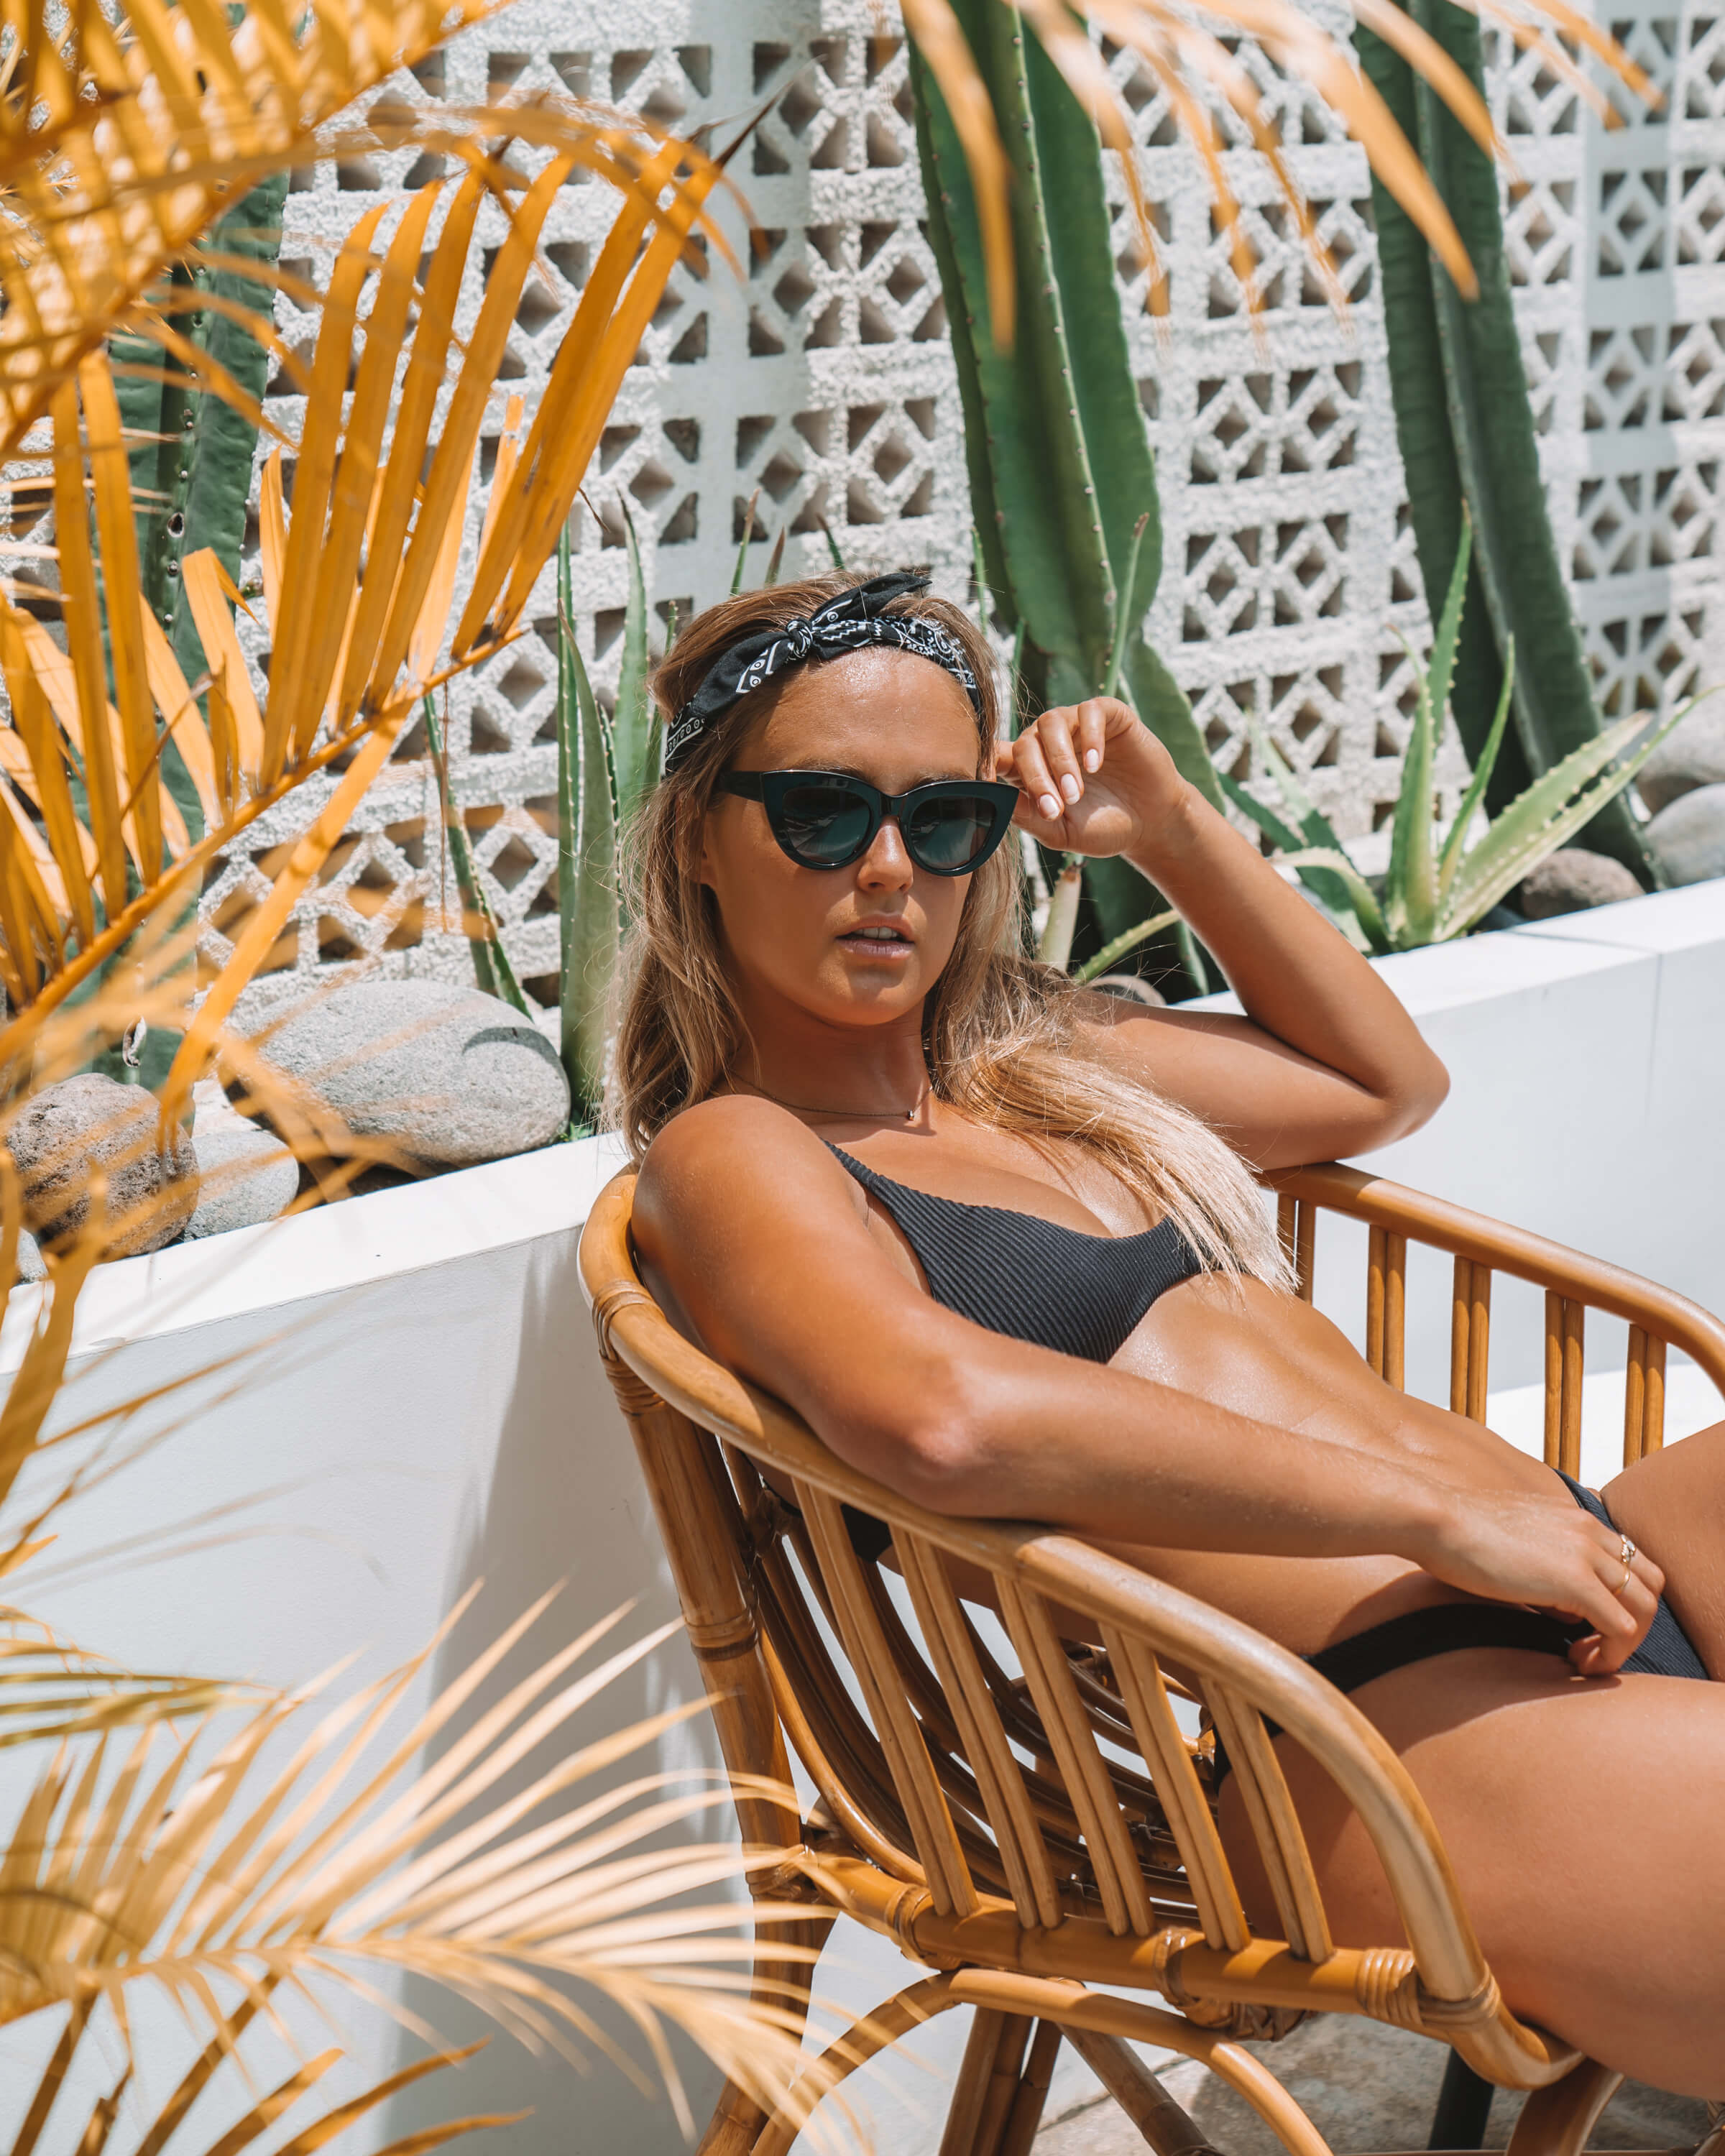 Soda Shades of Summer Australias best sunglasses eyewear online brand – Steph, Bali _-6